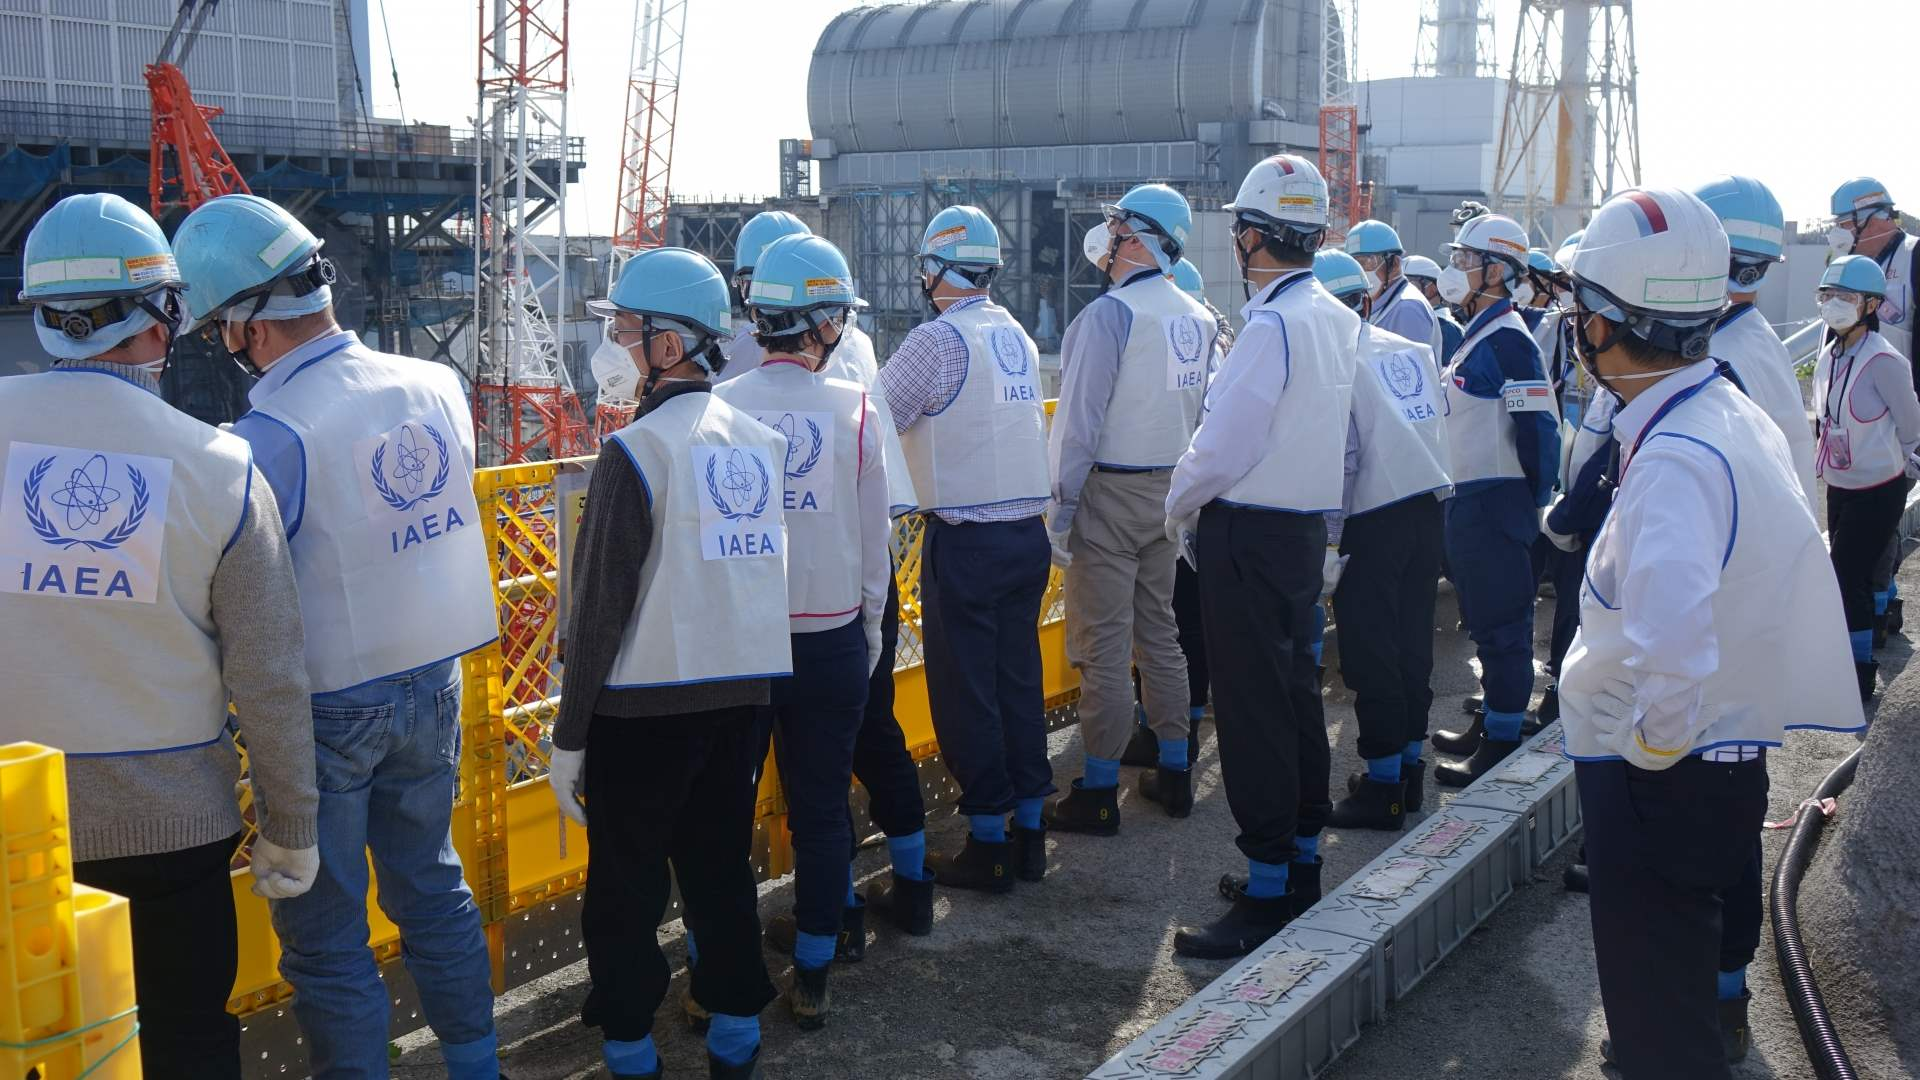 Members of the IAEA's 4th review mission of Japan's plans to decommission Fukushima Daiichi Nuclear Power Station, 7 November 2018